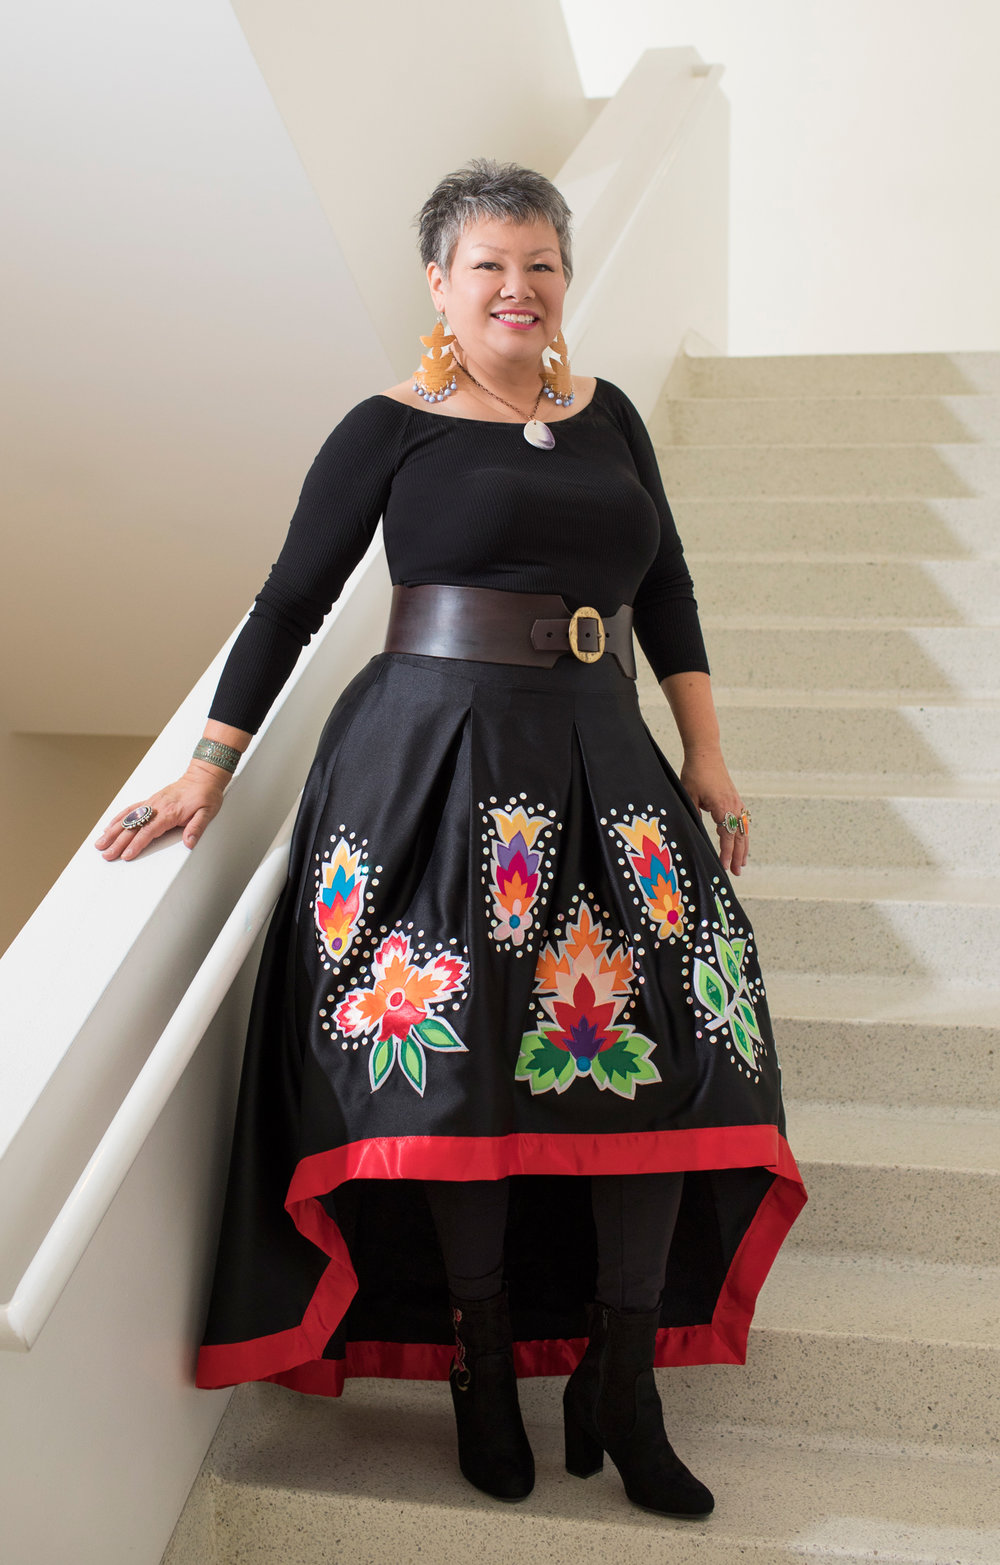 Delina White designs apparel and produces fashion shows celebrating and perpetuating Native cultural heritage - Creative Exchange